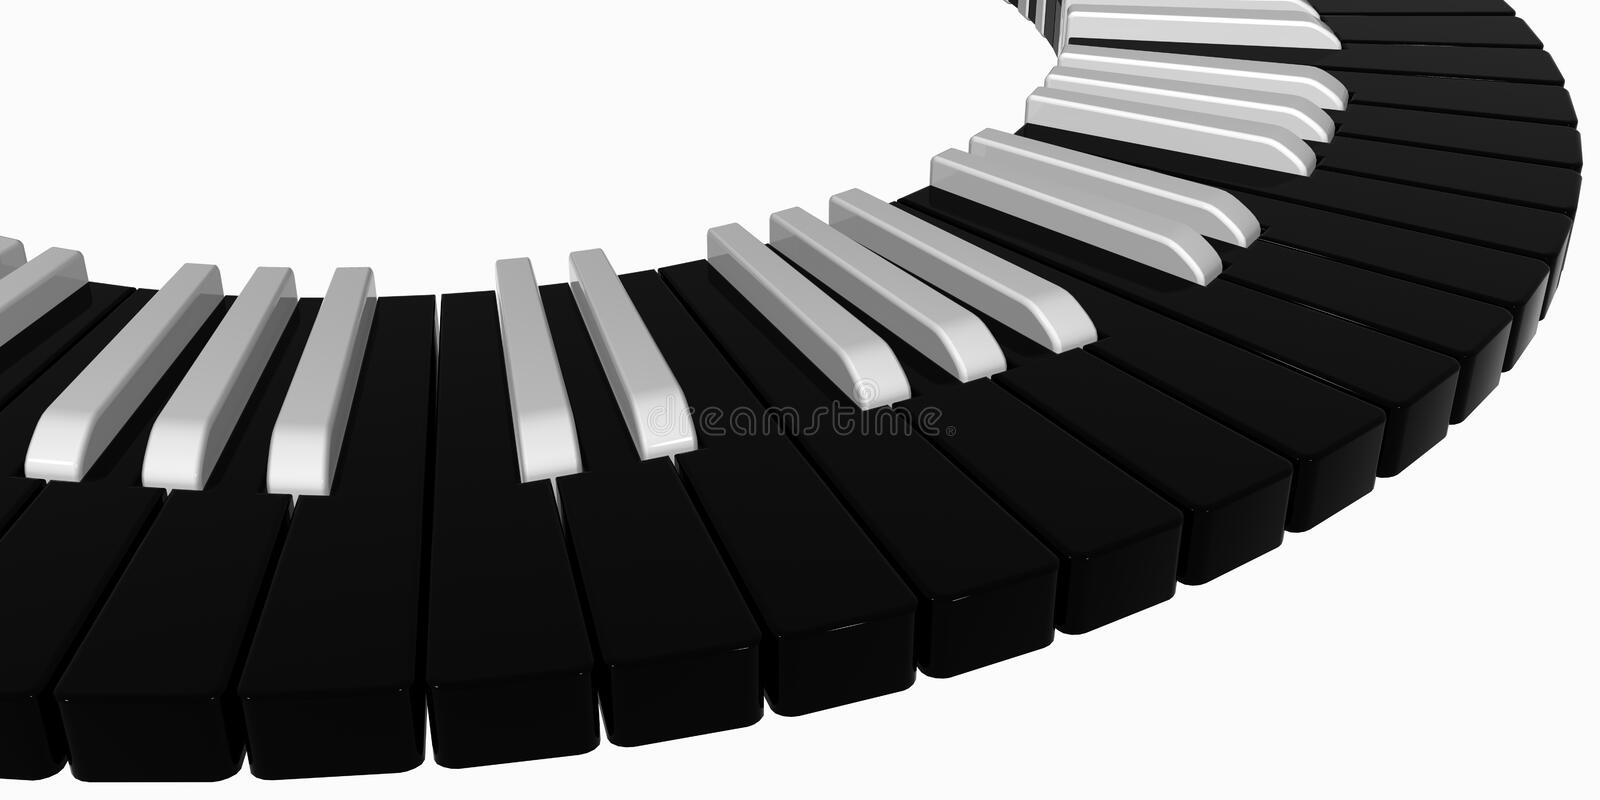 Piano black royalty free stock images